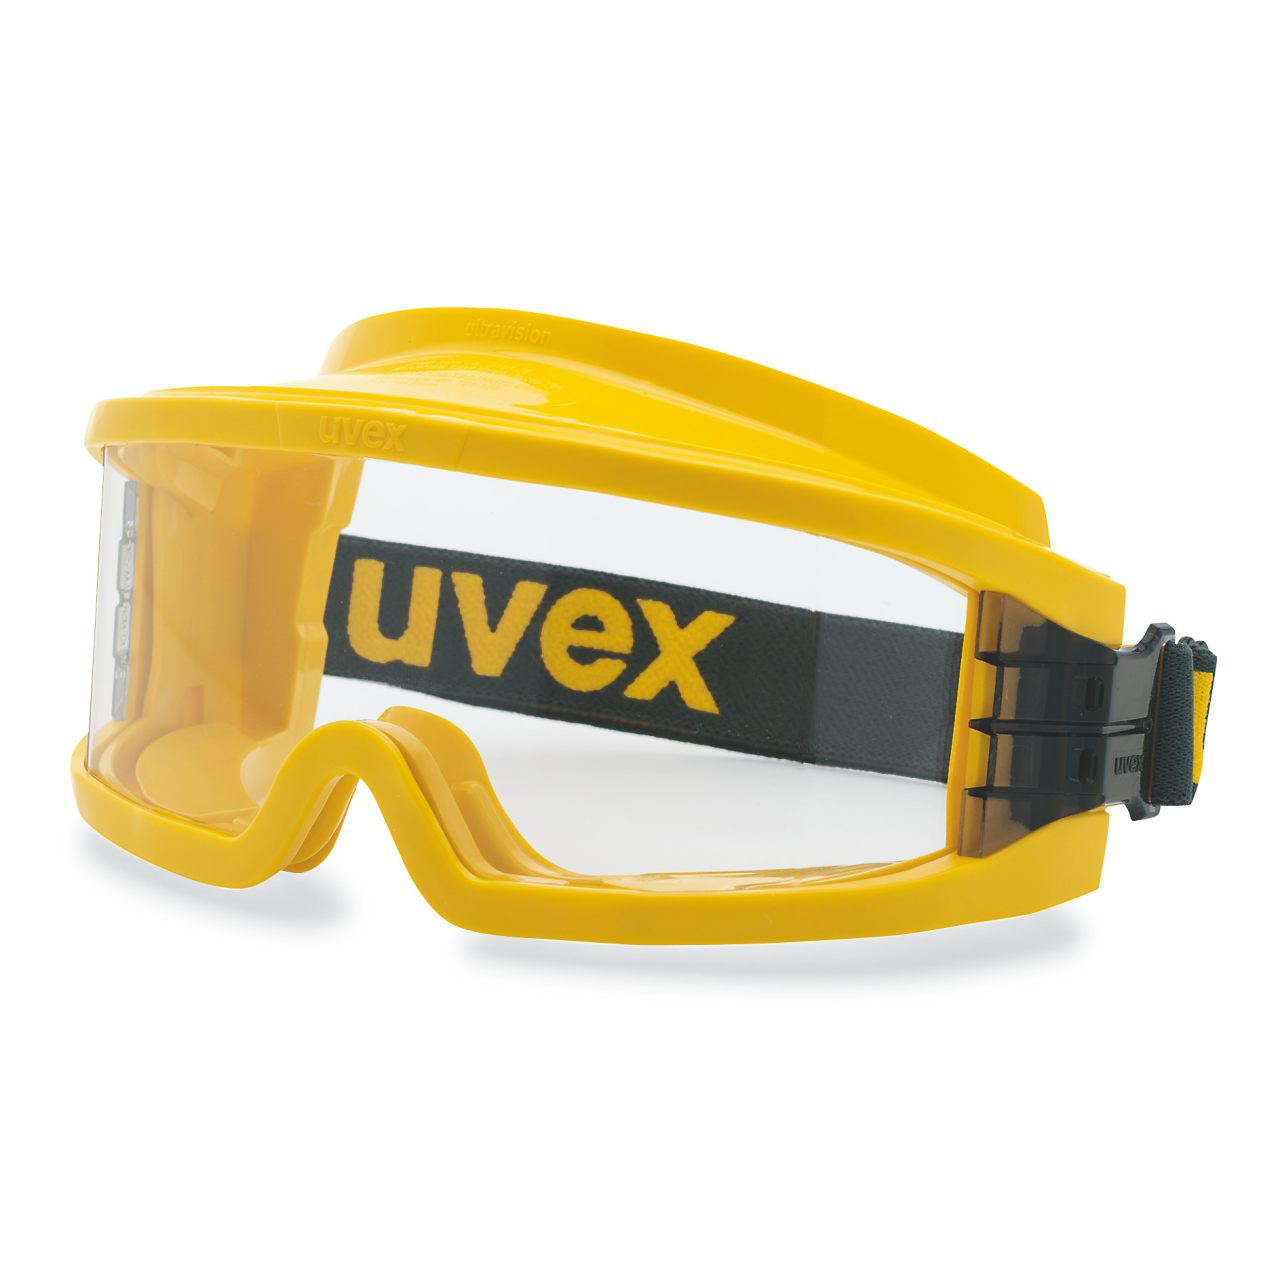 Lunettes de protection panoramiques uvex ultravision   Protection ... 54daa37834fd